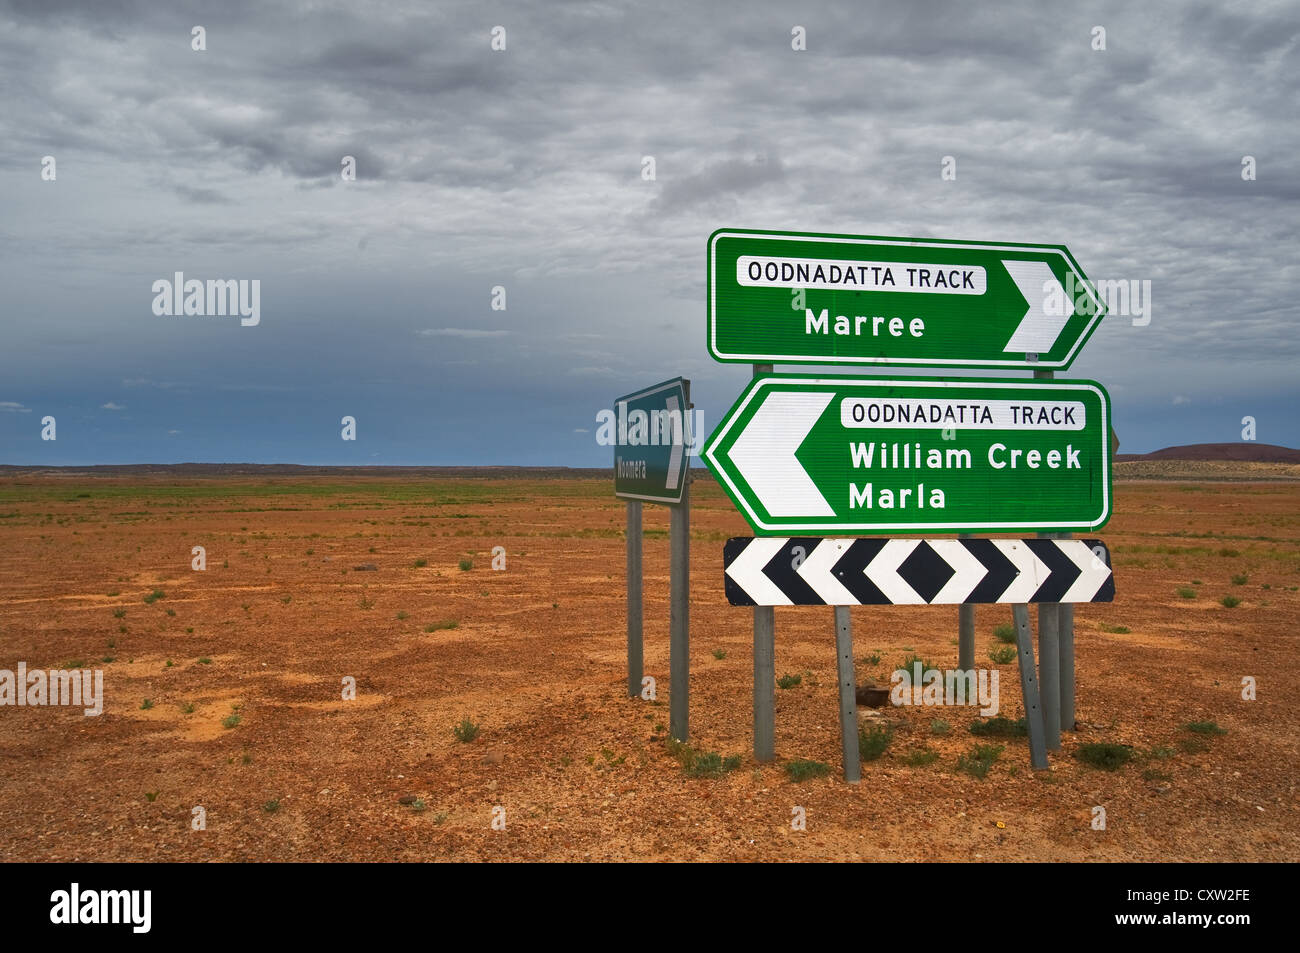 Road sign at the famous Oodnadatta Track in South Australia's desert. - Stock Image